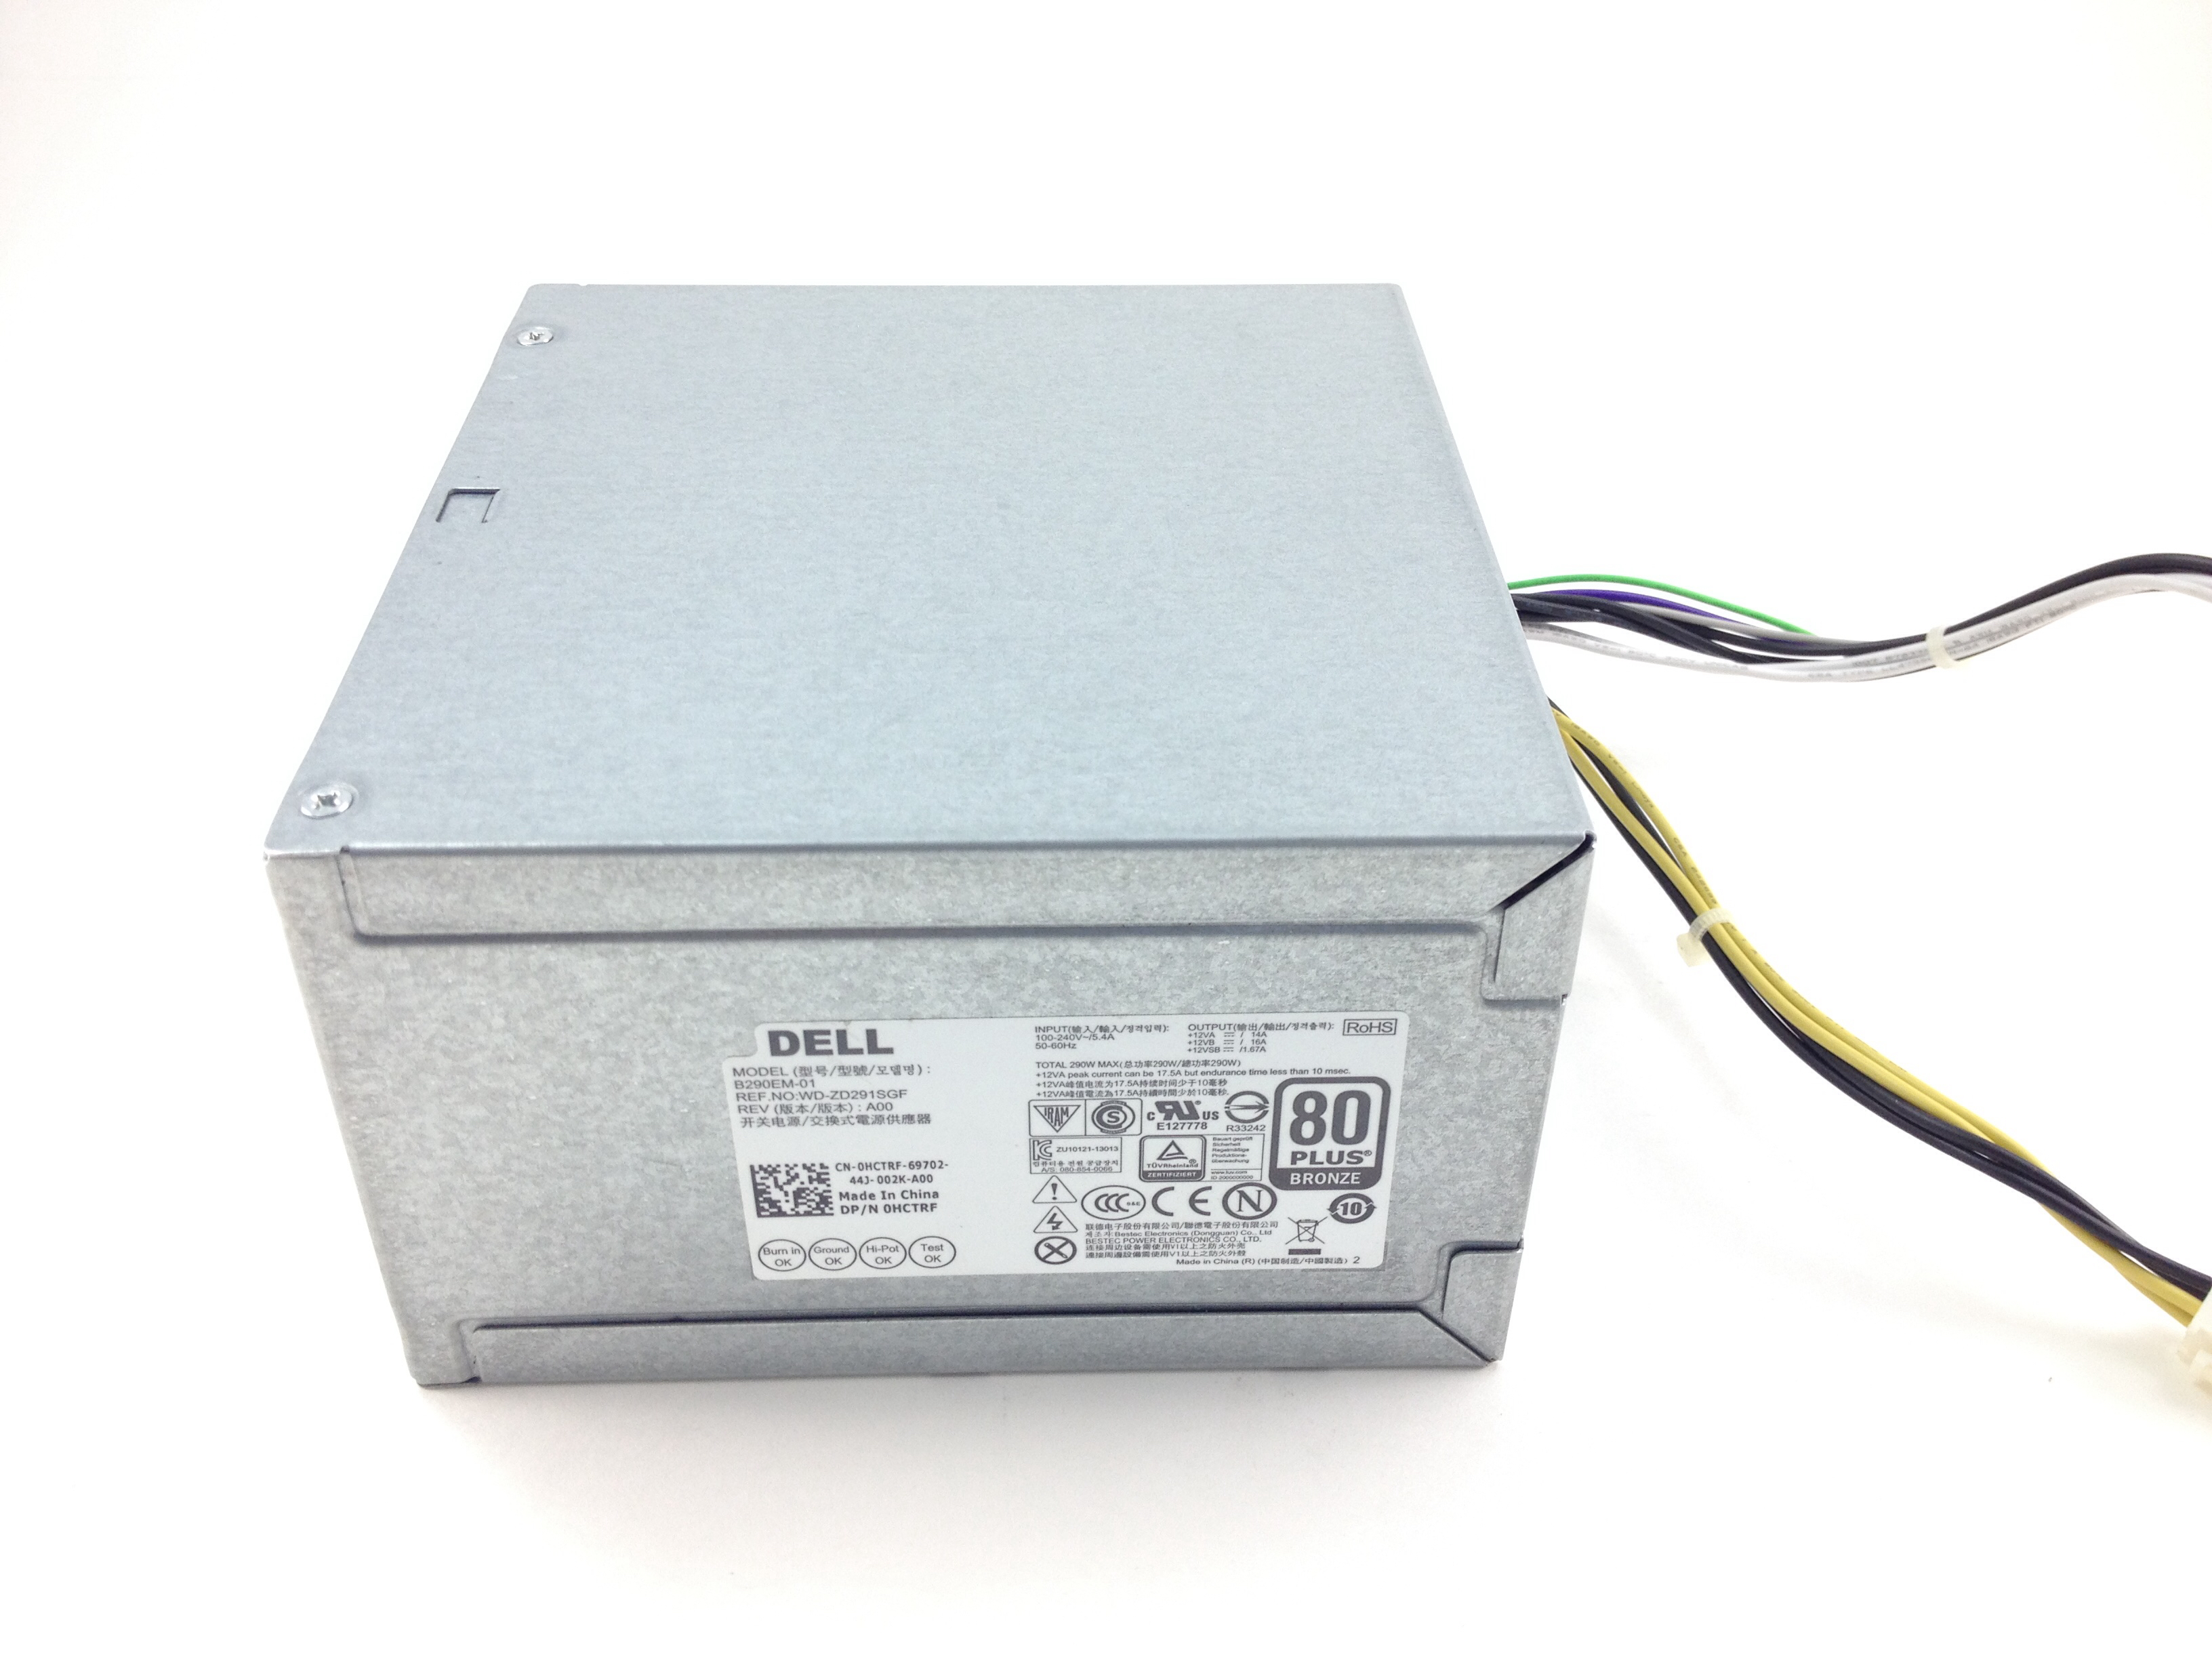 HCTRF Dell Optiplex 7020 9020 T1700 290W Power Supply (HCTRF)